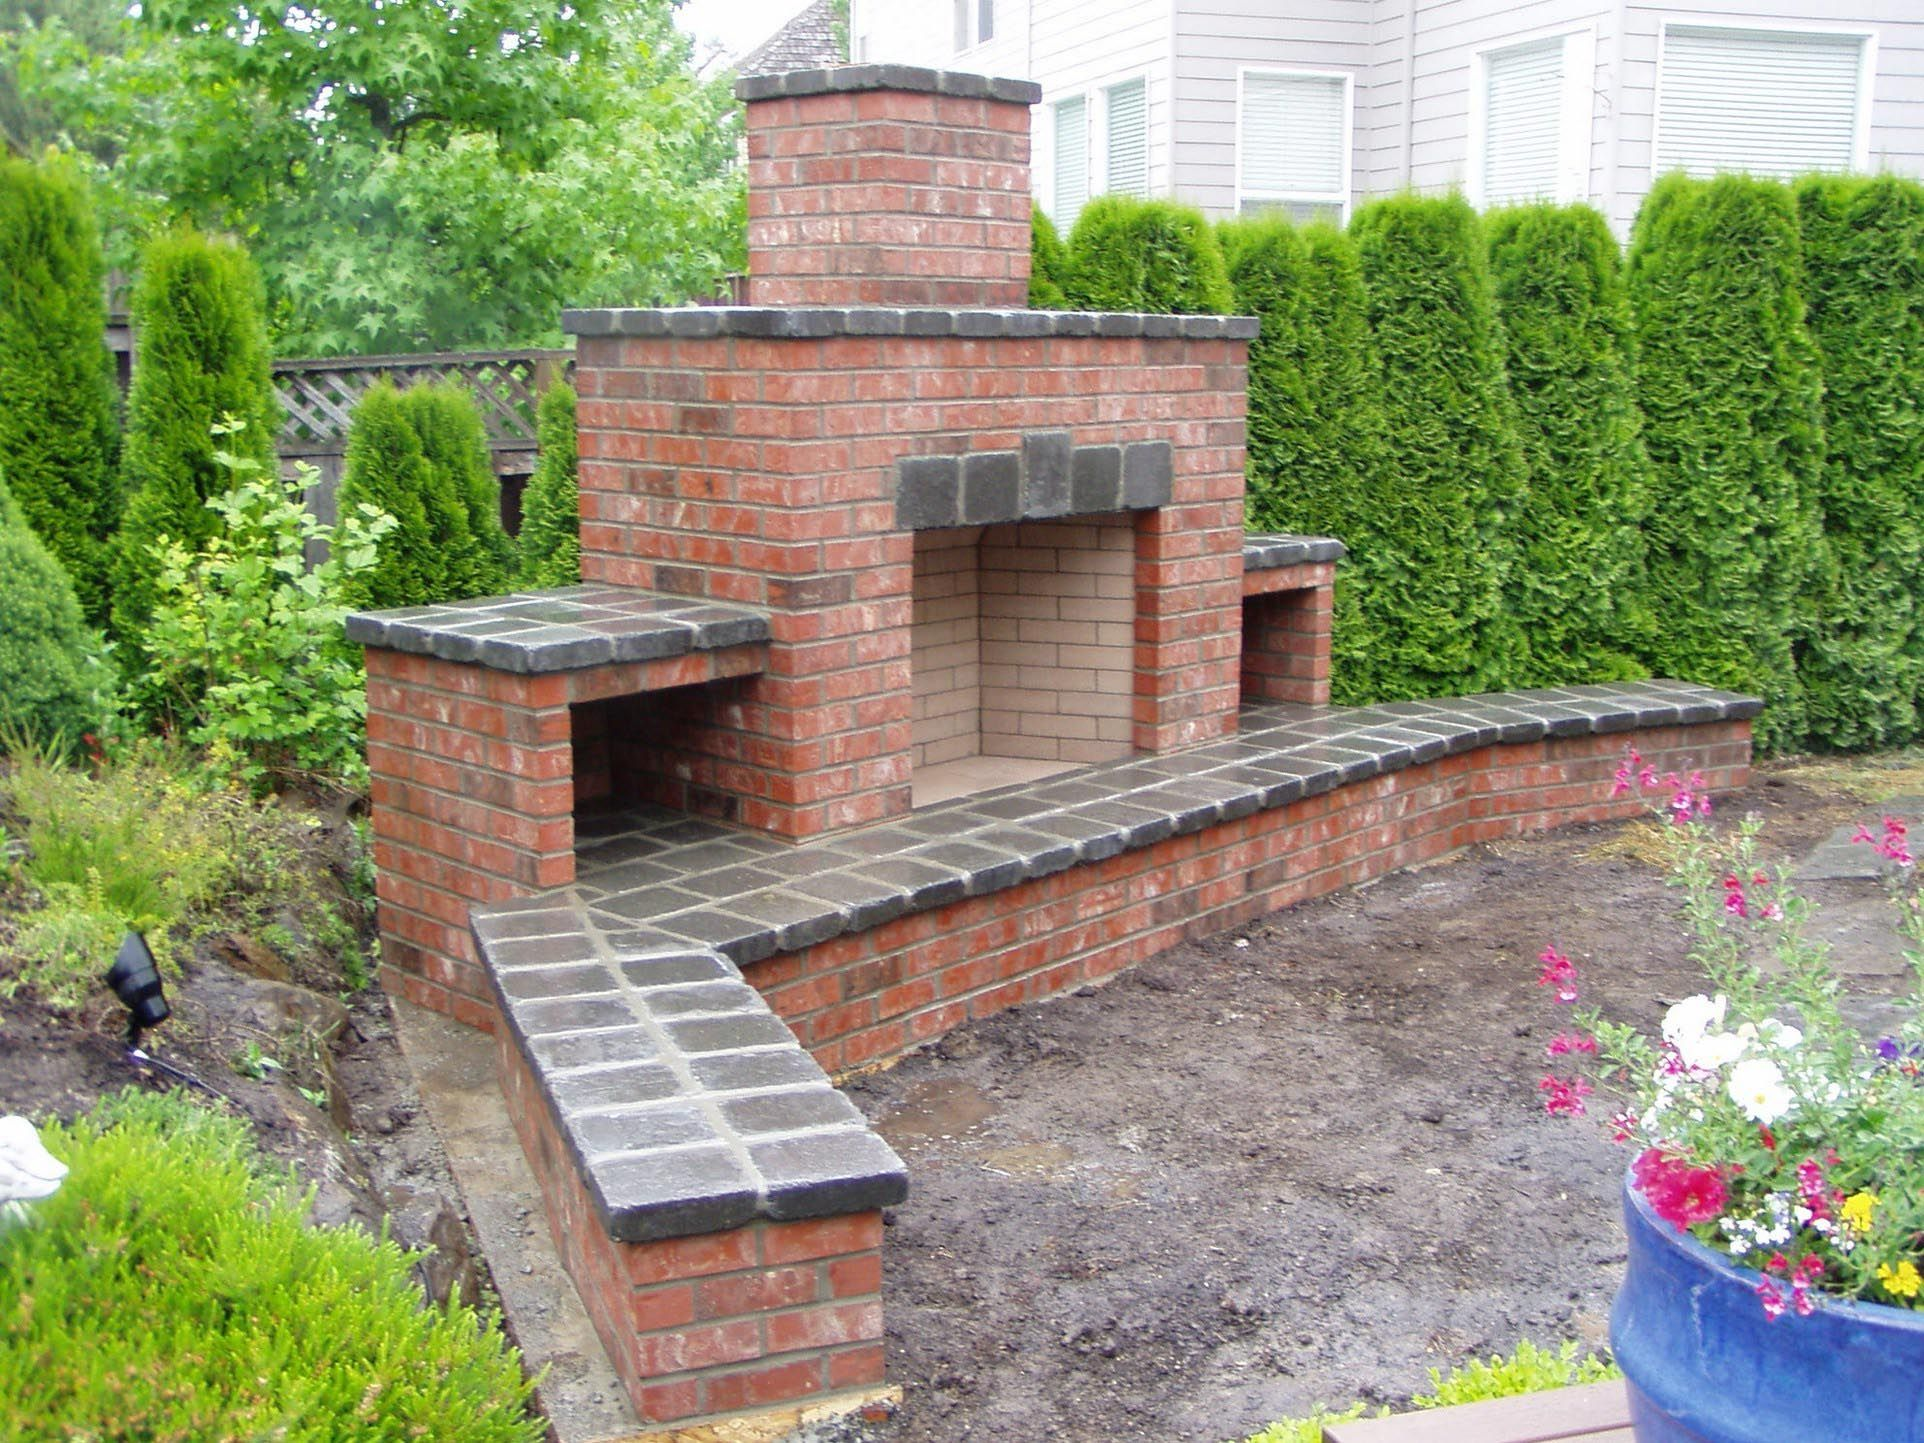 Red Brick Outdoor Fireplace | Diy outdoor fireplace, Red ...